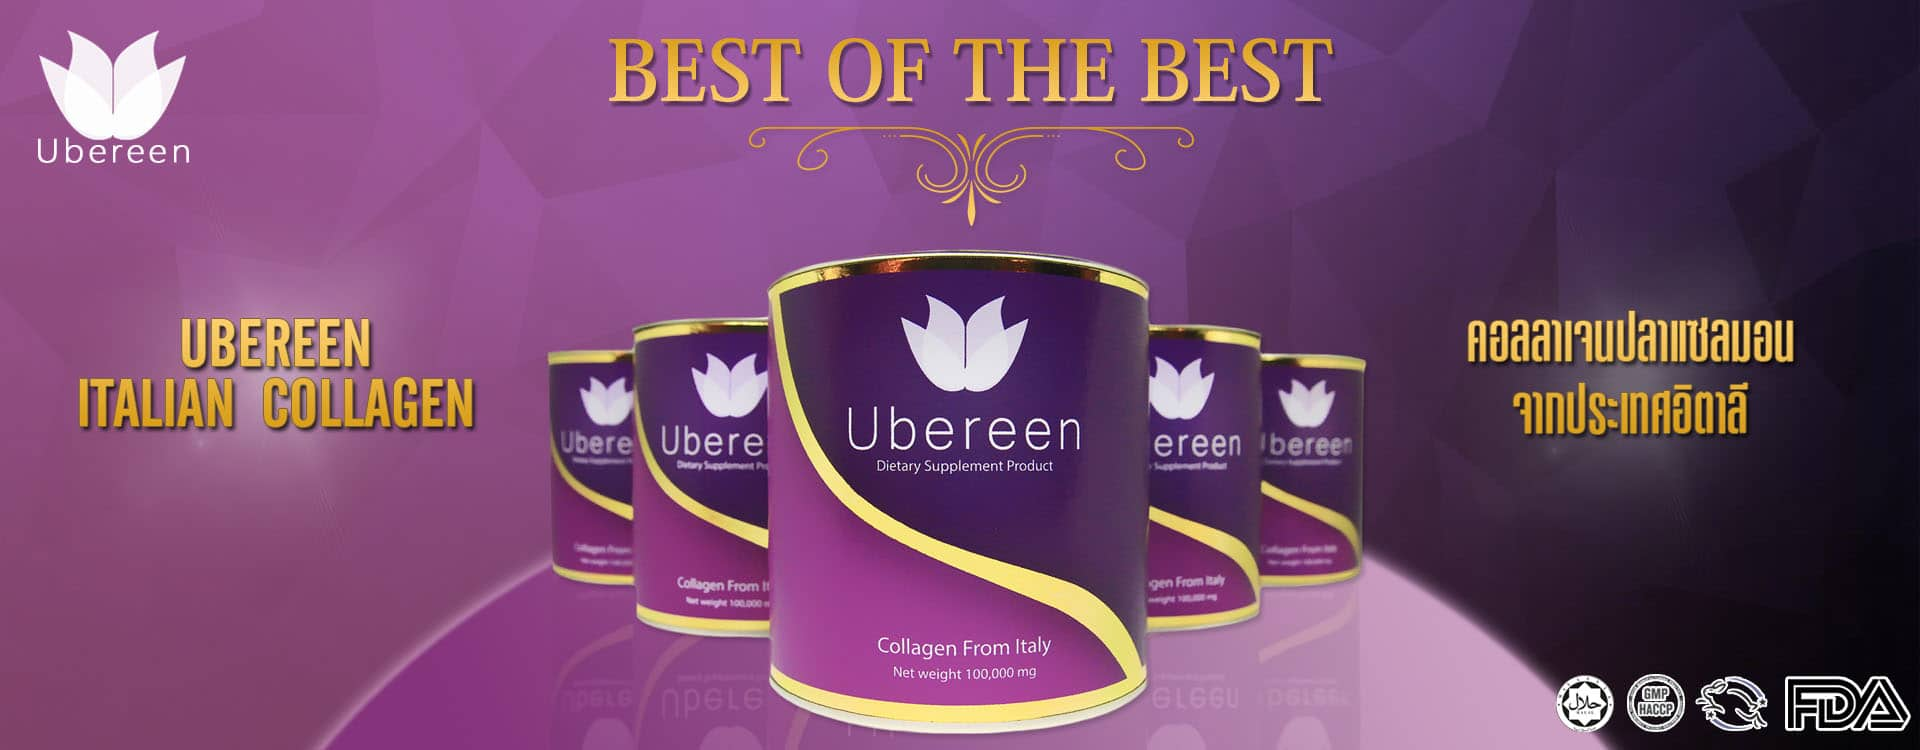 ubereen collagen slider